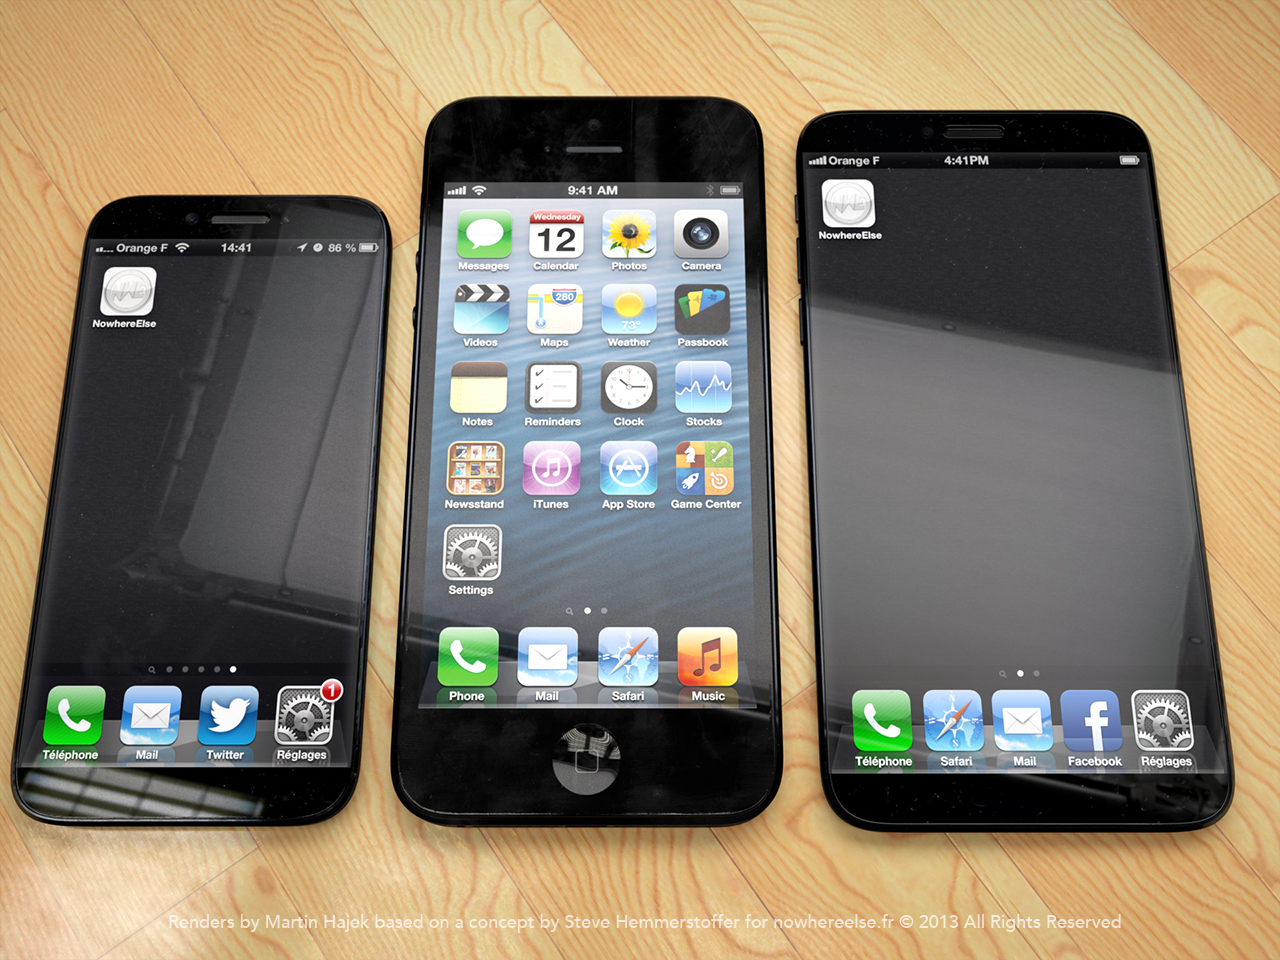 Apple iPhone 5S or Apple iPhone 6 or Both New iPhones?